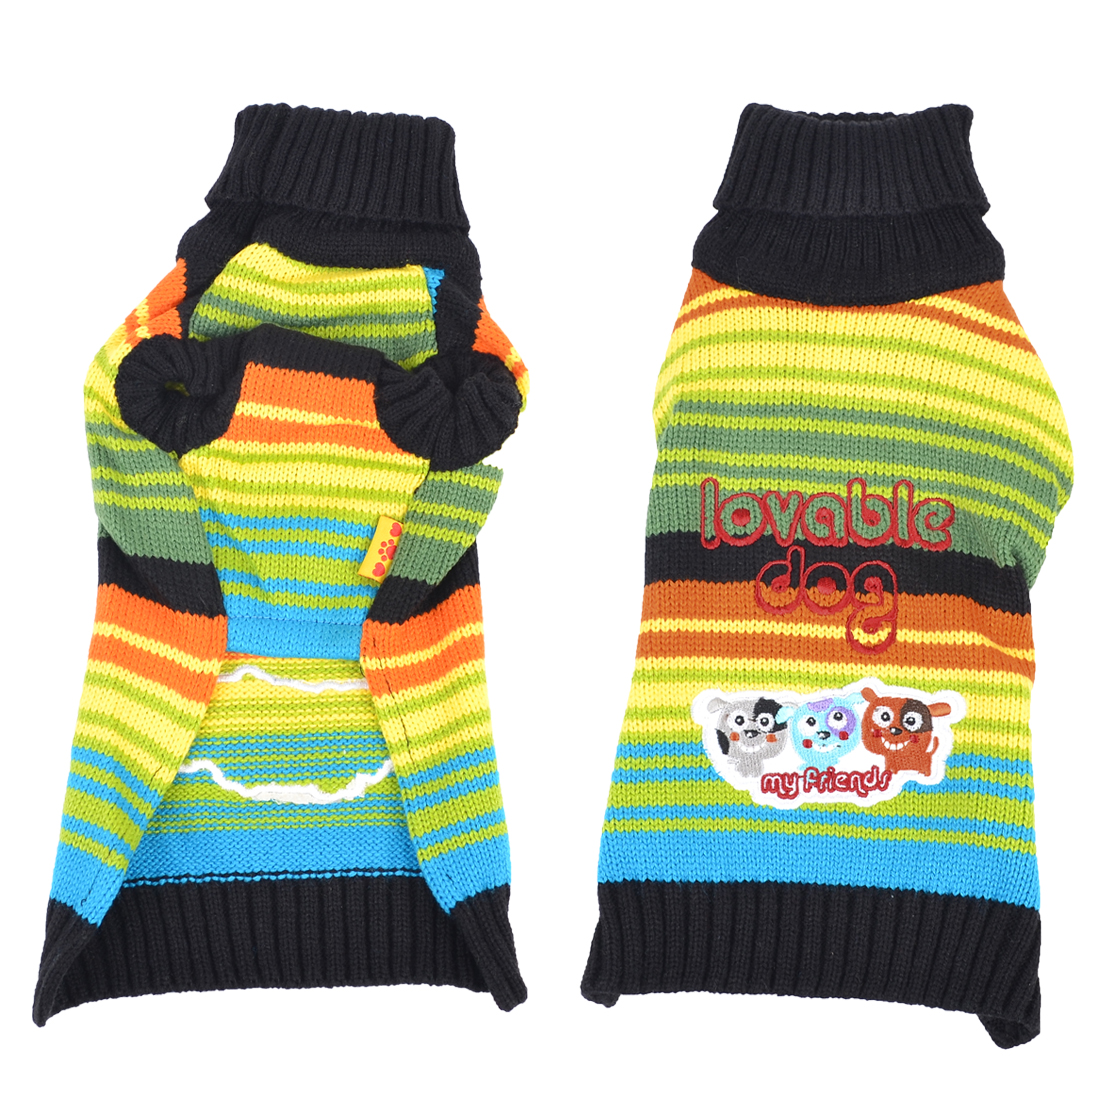 Winter Warm Colorful Hand Knit Yorkie Dog Clothing Pet Puppy Sweater S